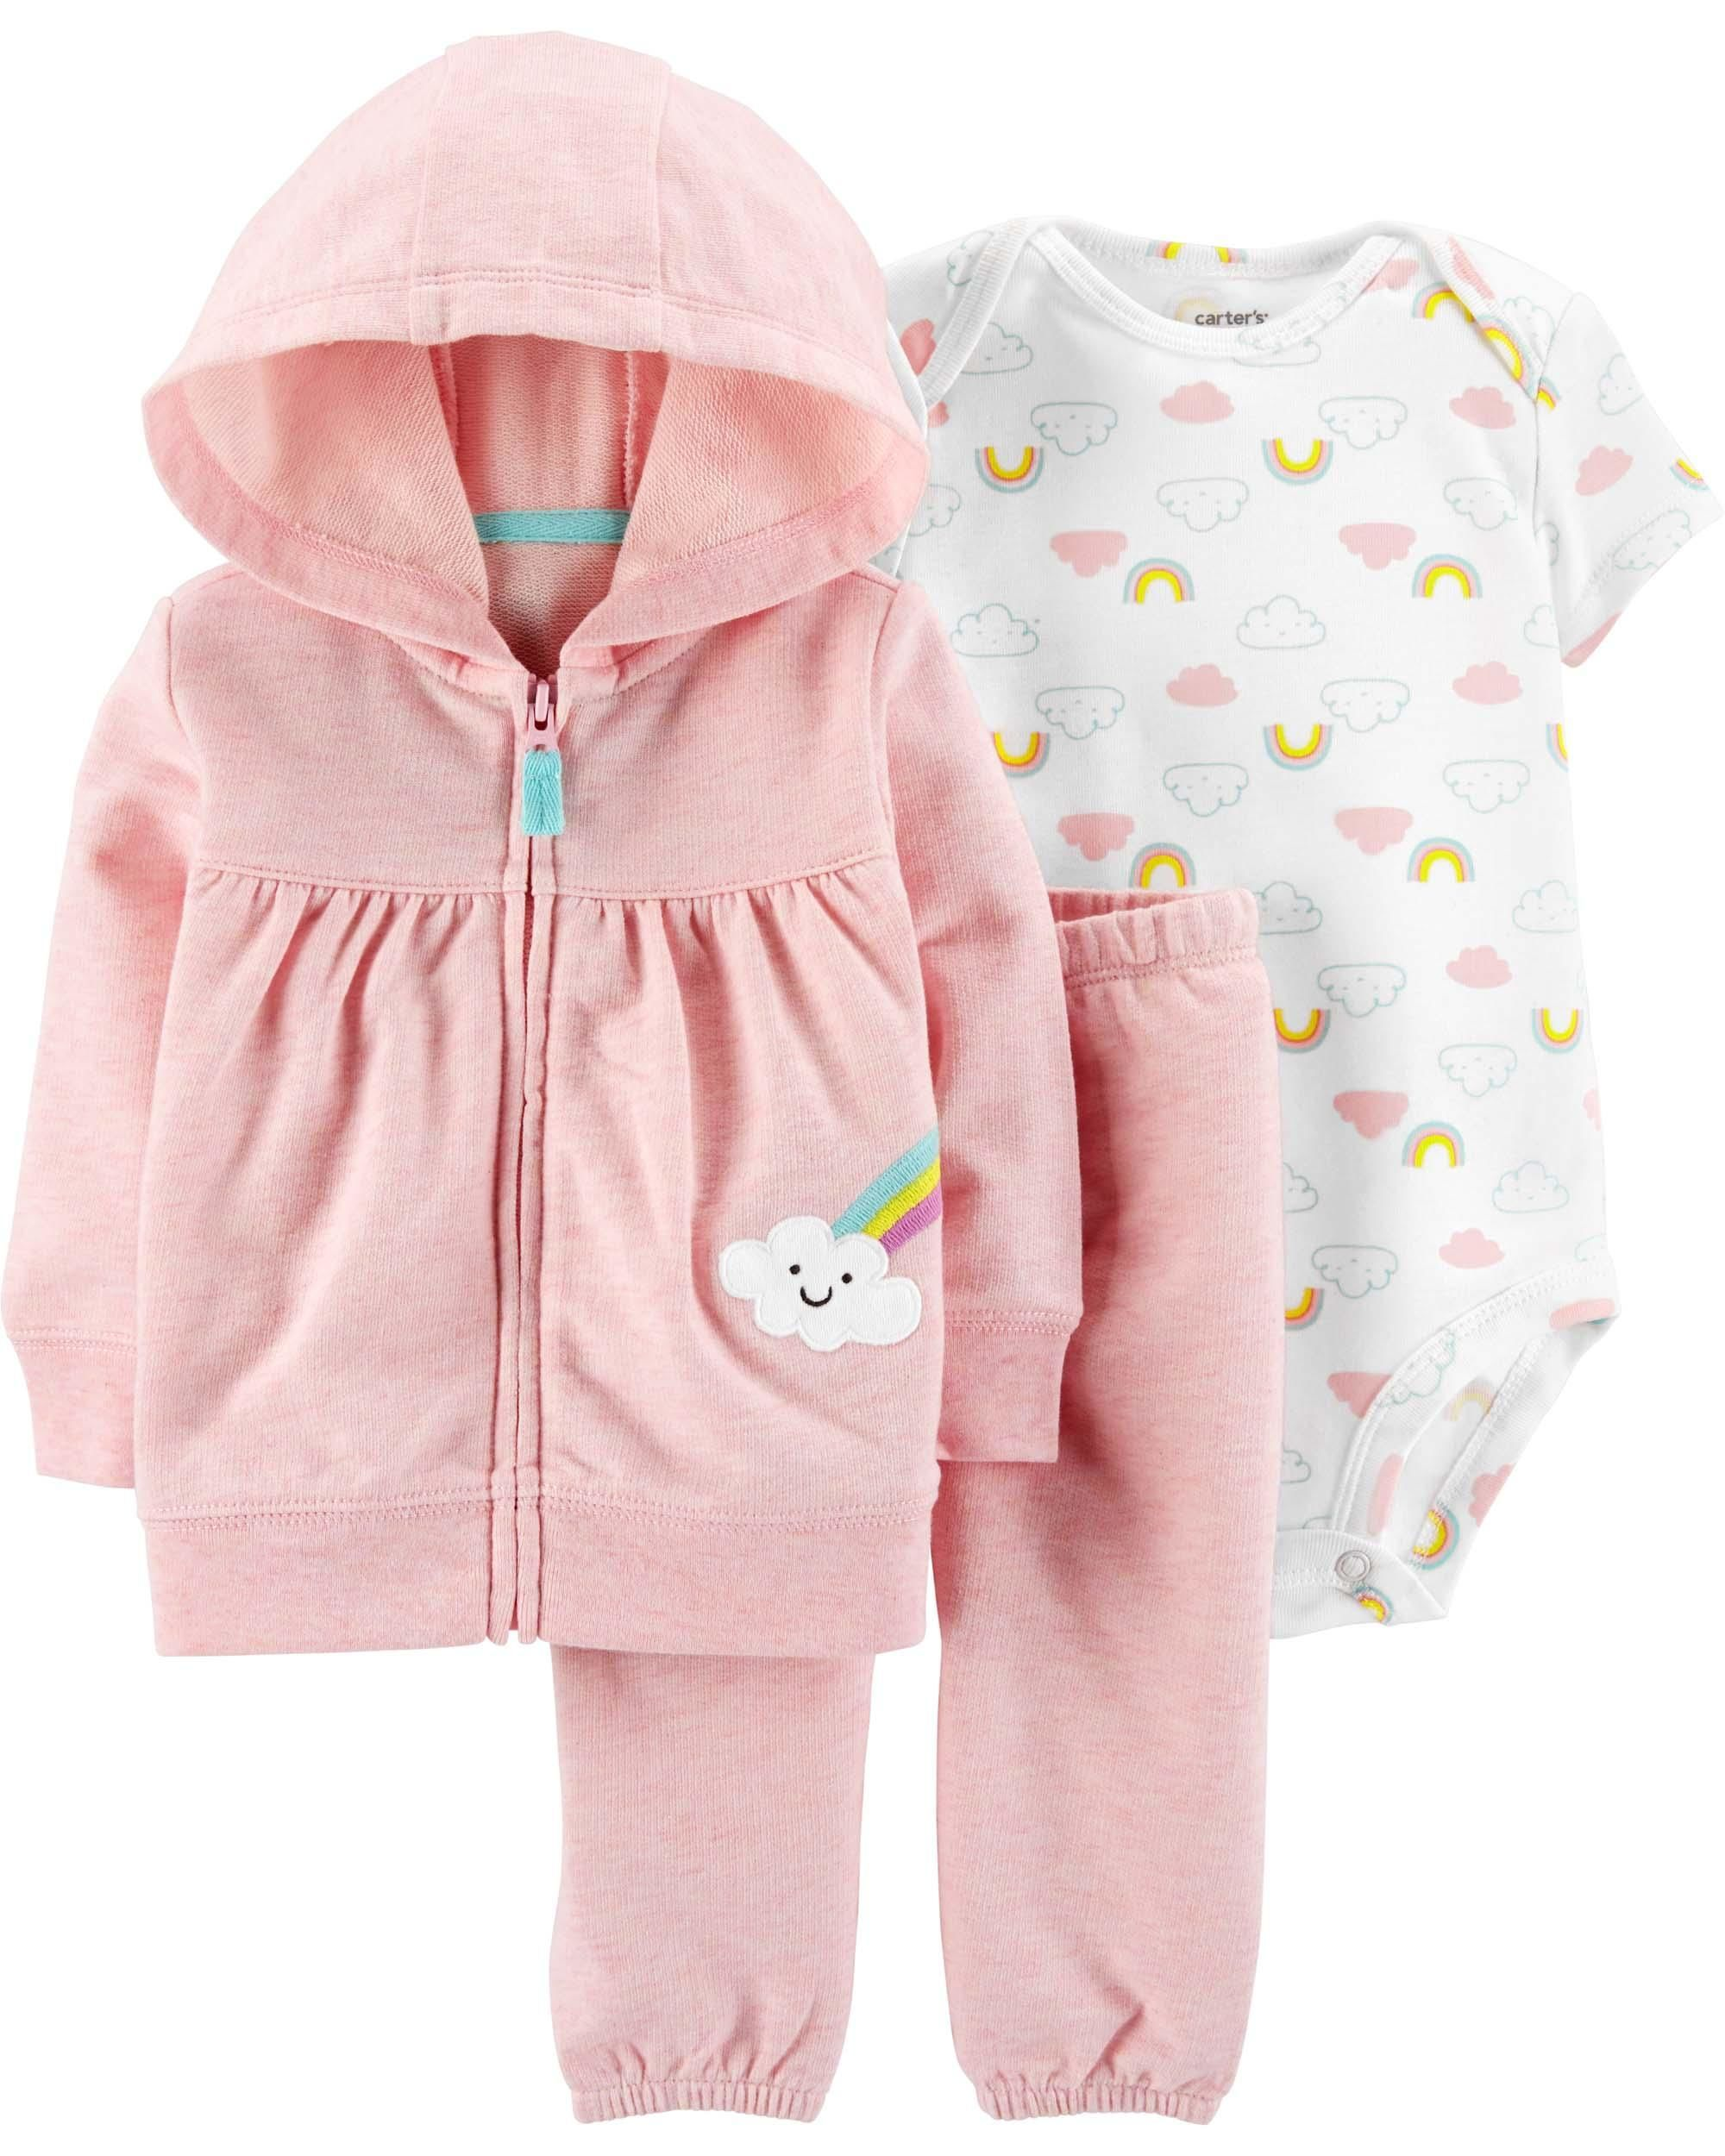 ad6e581a3 3-Piece Little Jacket Set